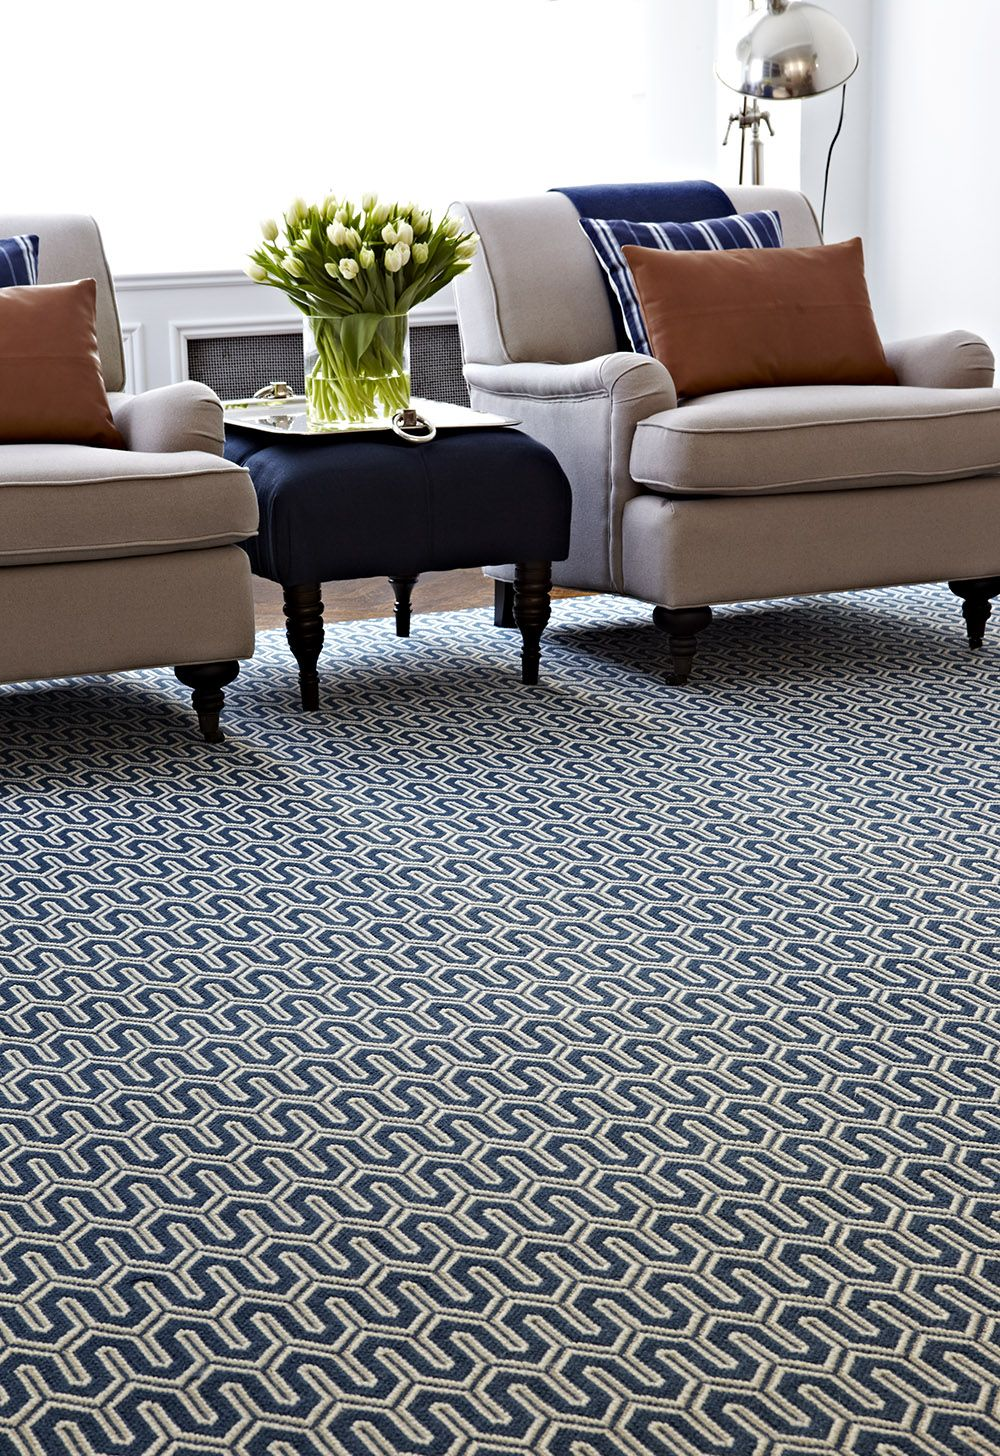 a striking navy geometric rug in a living room stanton carpet style baltimore in color. Black Bedroom Furniture Sets. Home Design Ideas